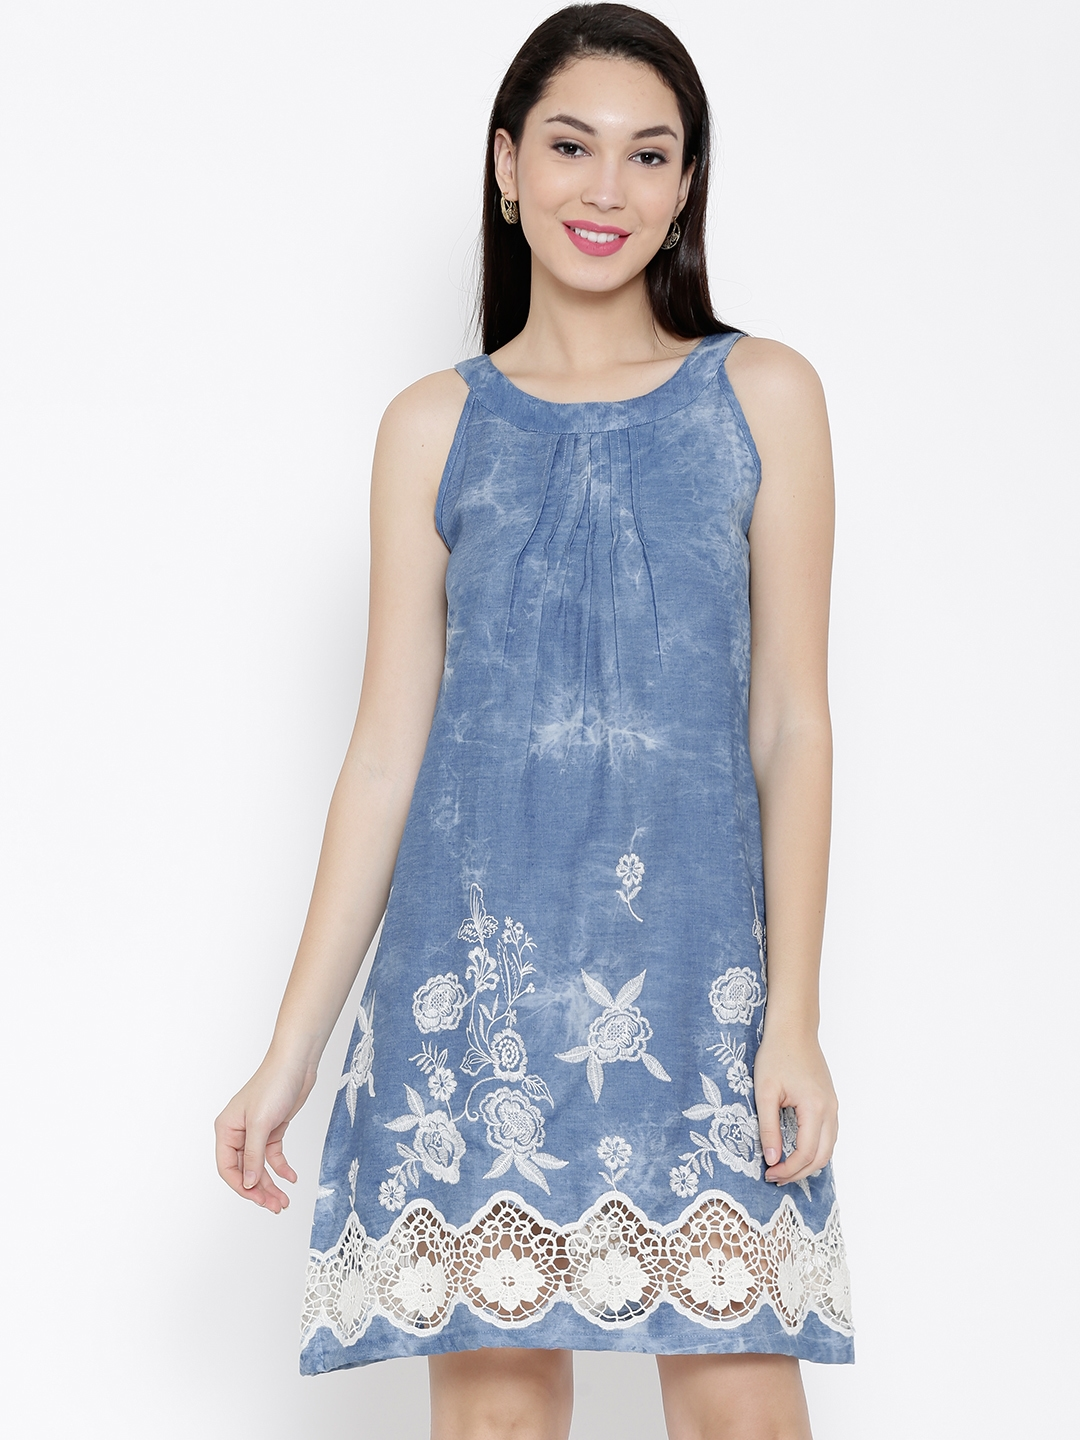 Buy Biba Women Blue Lace Denim A Line Dress Dresses For In White Image